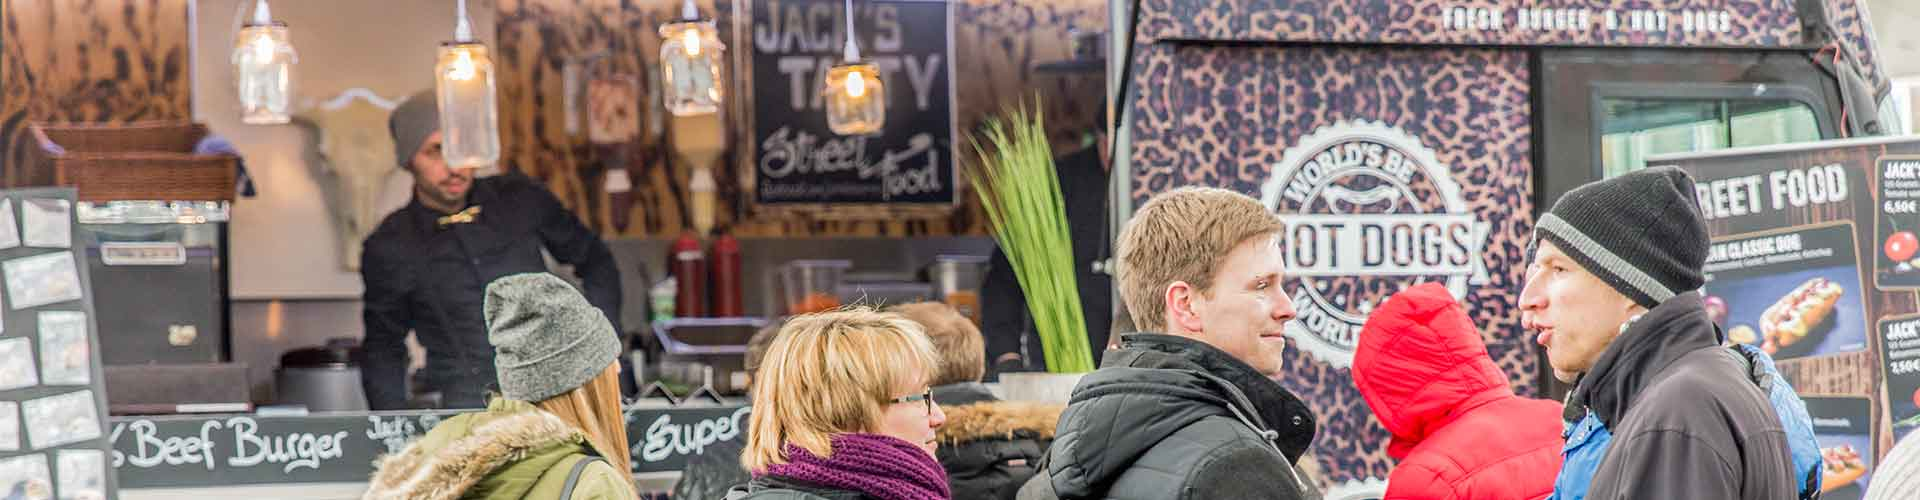 Street Food Kunden am Foodtruck Jack's Tasty